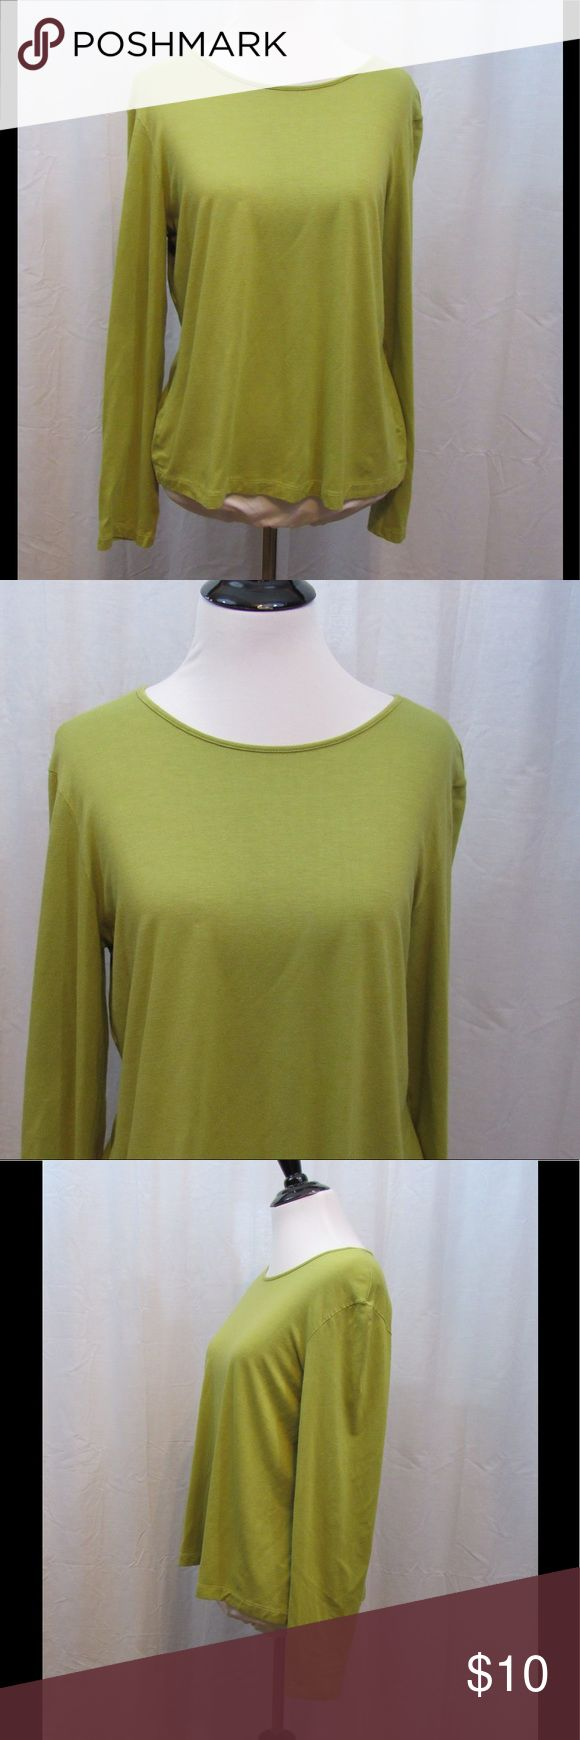 """Chico's Design Green Long Sleeve Top 2 M Size: 2 Material: 95% Rayon 5% Spandex Care Instructions: Hand Wash  Bust: 40"""" Sleeves: 23"""" Length: 22""""  All clothes have been inspected and are in excellent used condition unless otherwise noted. P28 Chico's Tops"""